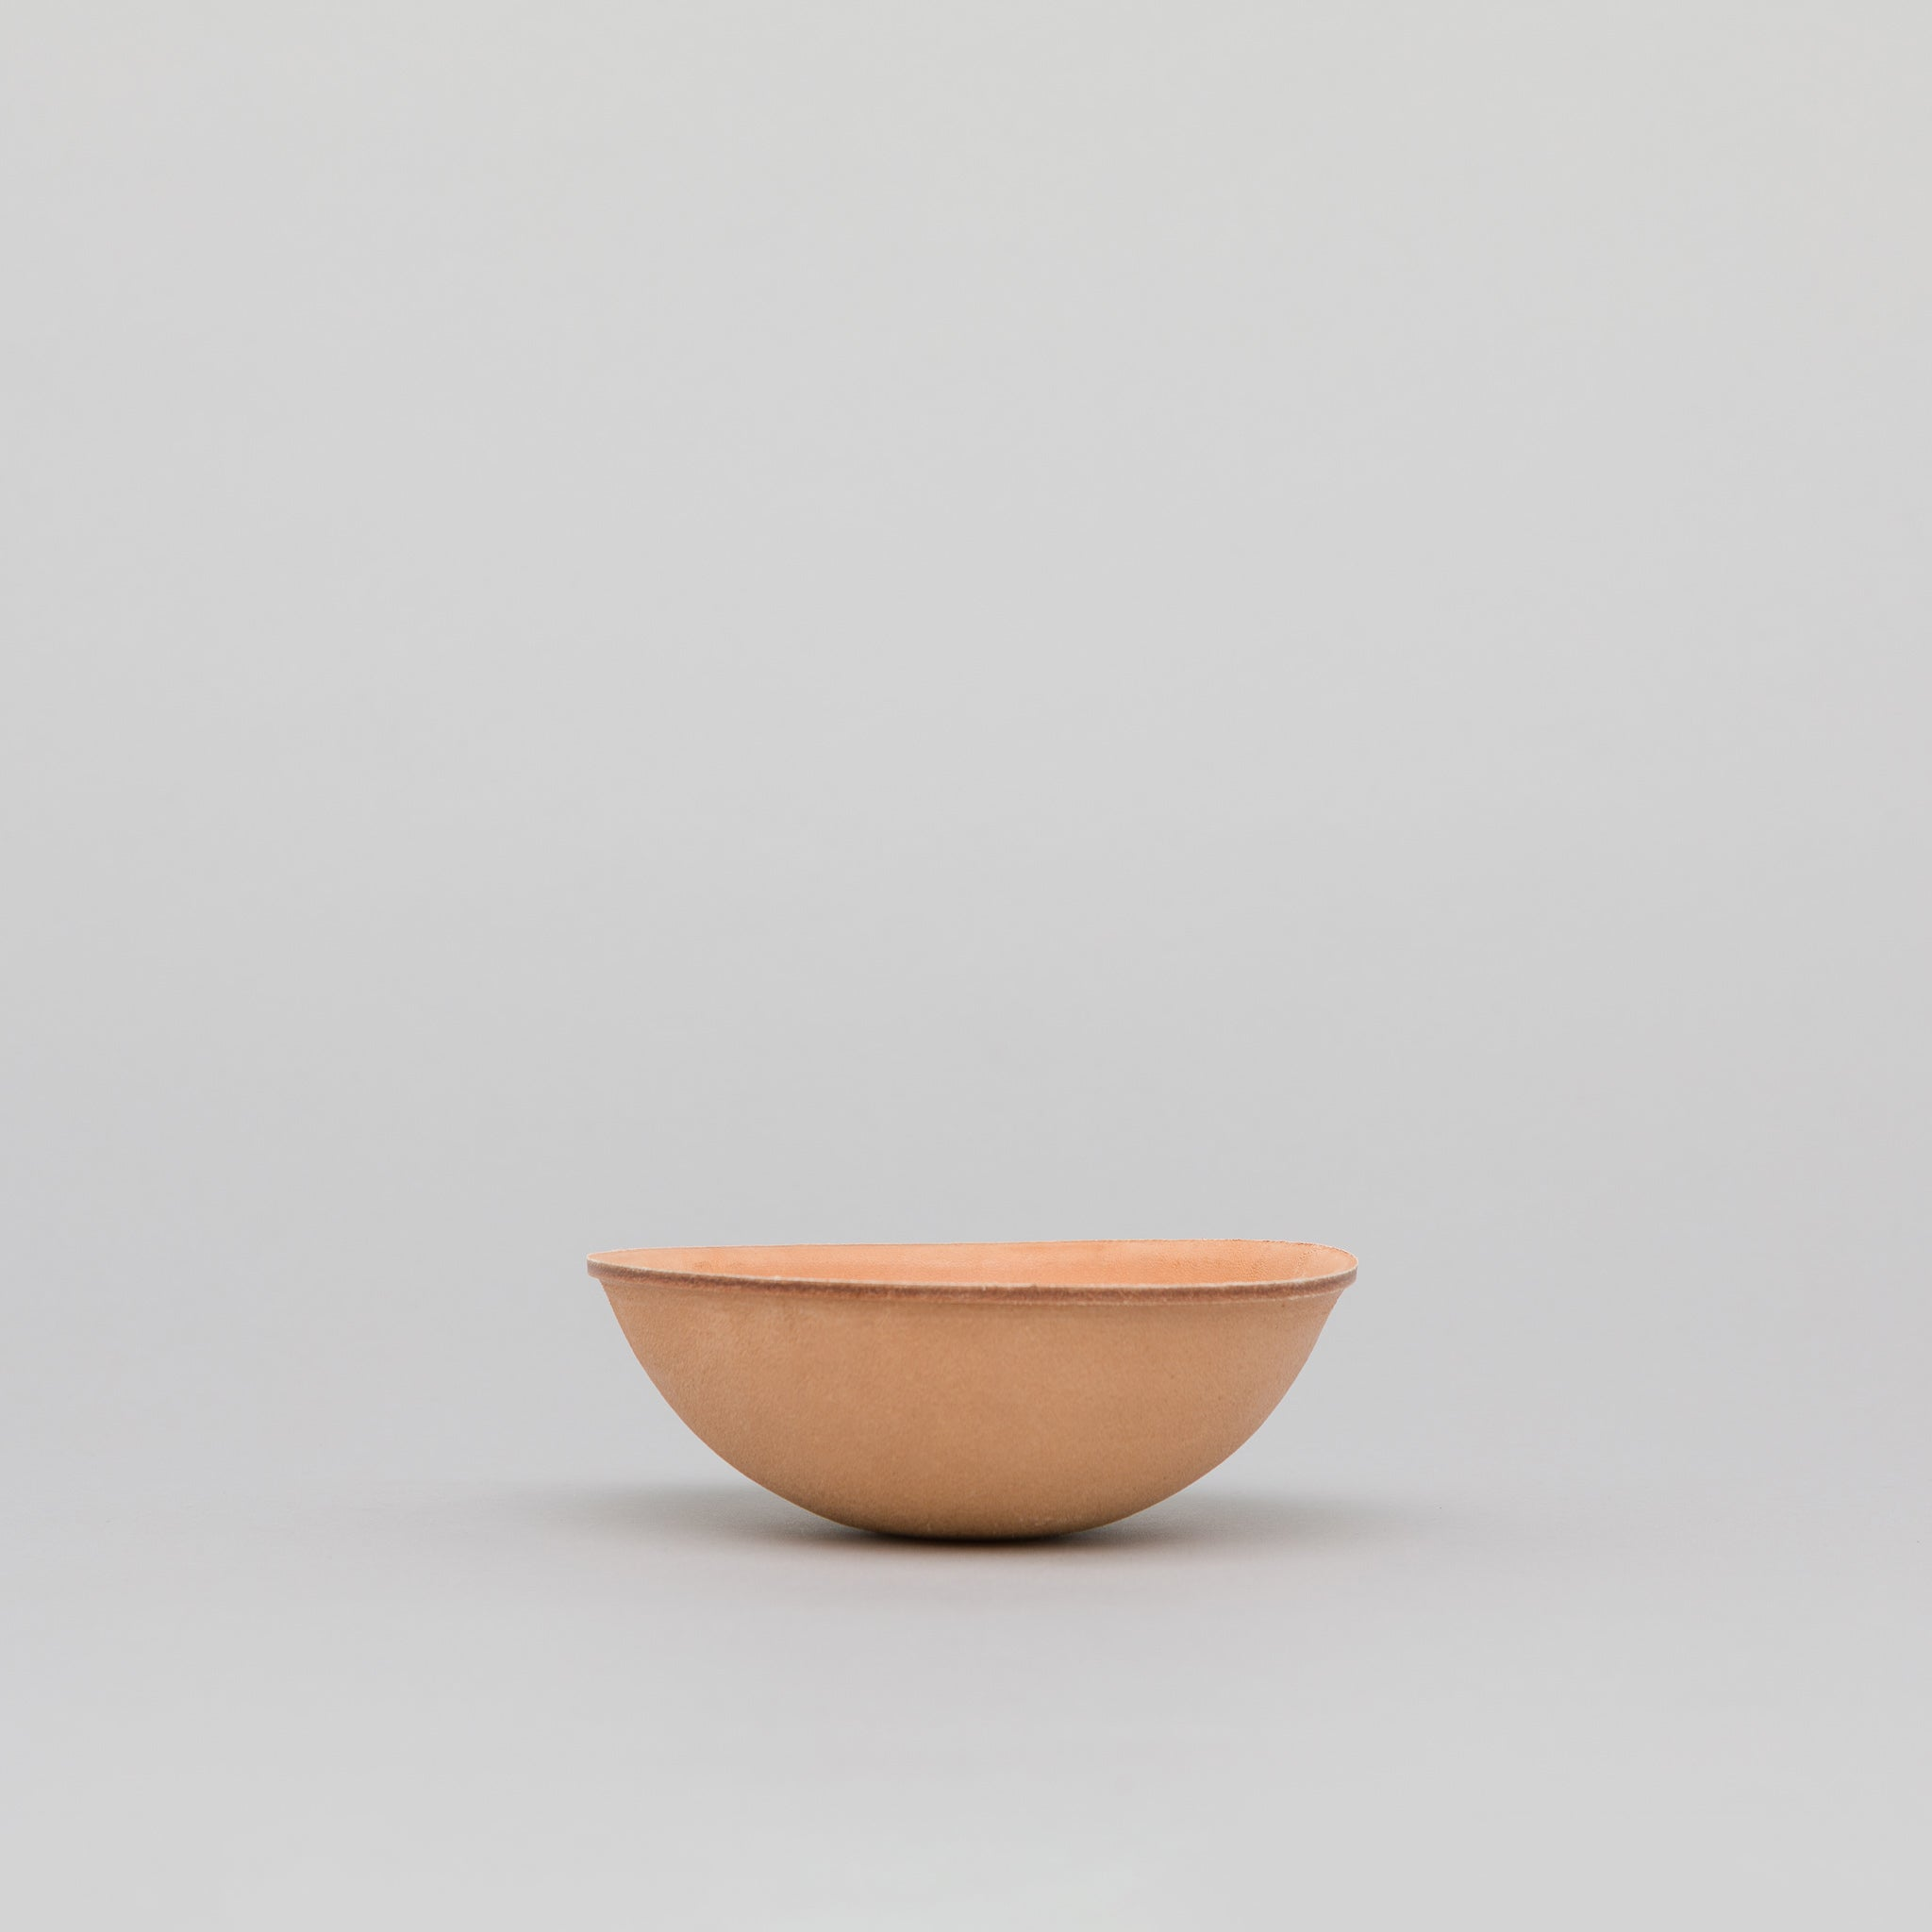 Bowl in Natural